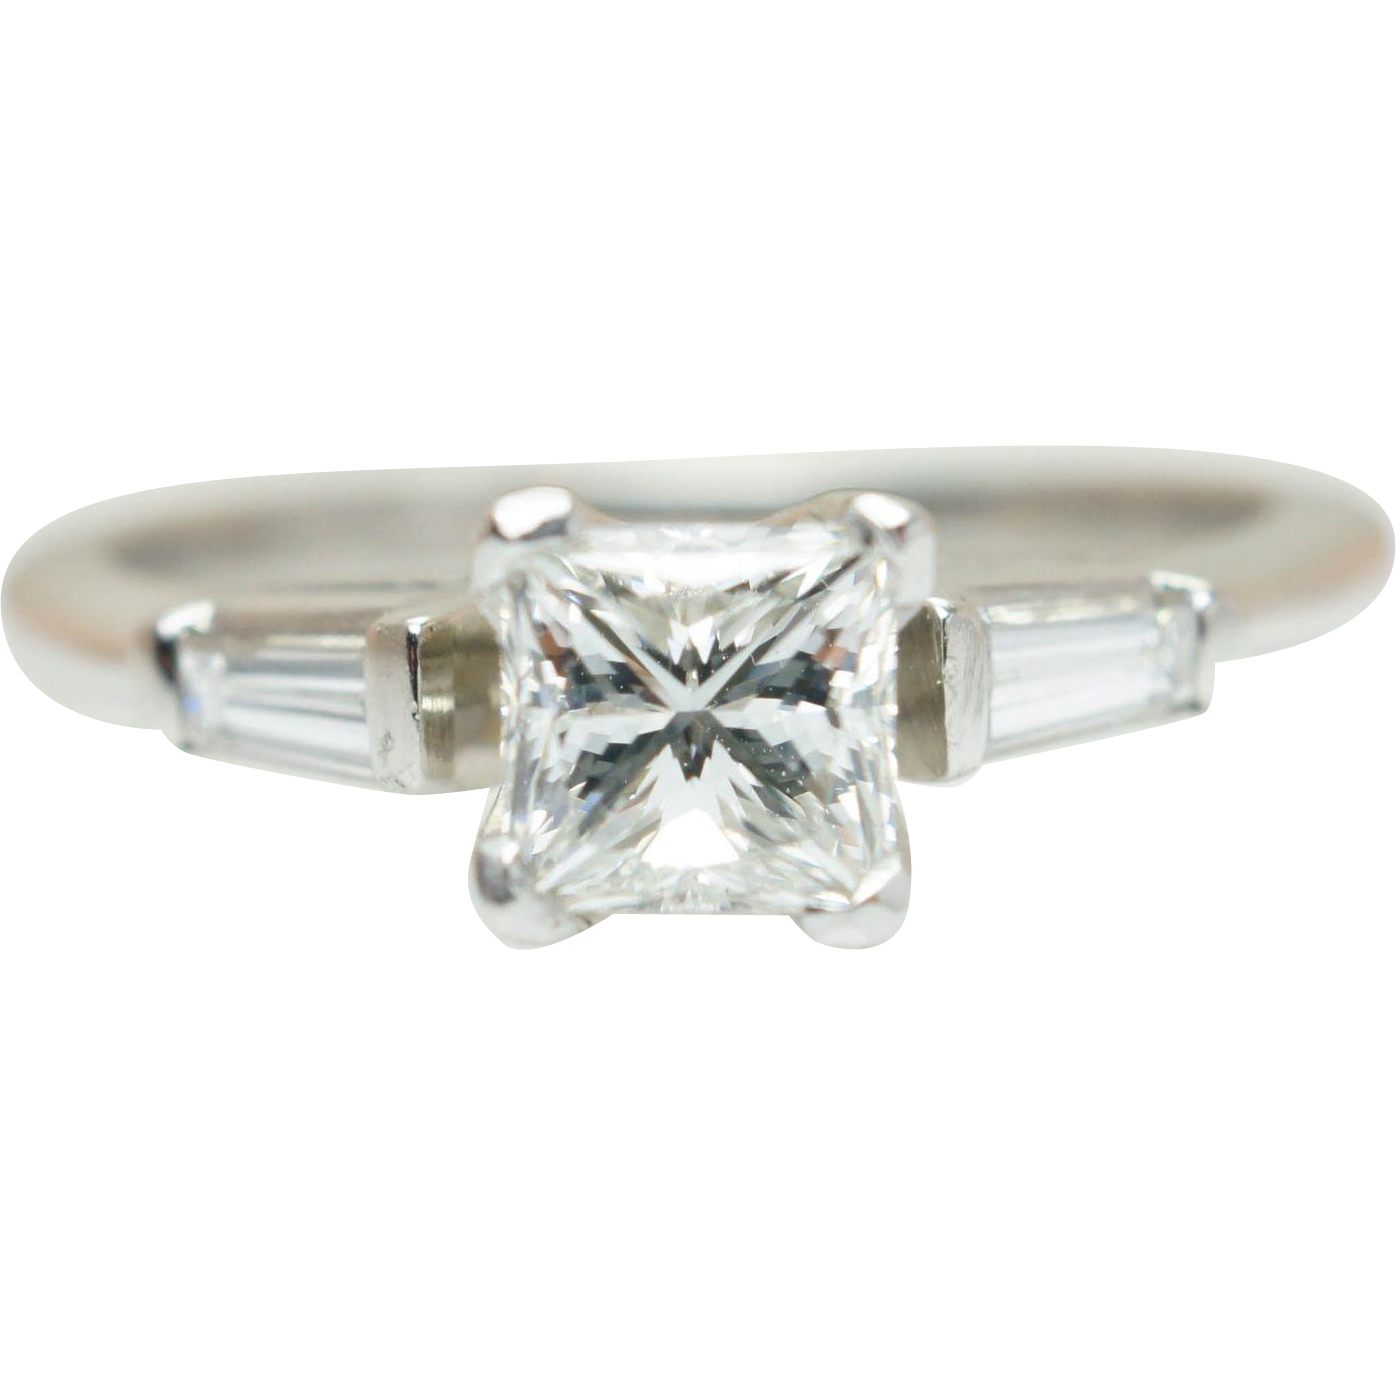 Platinum .80CTW Princess Cut Diamond Engagement Ring with Baguette Cut Accents